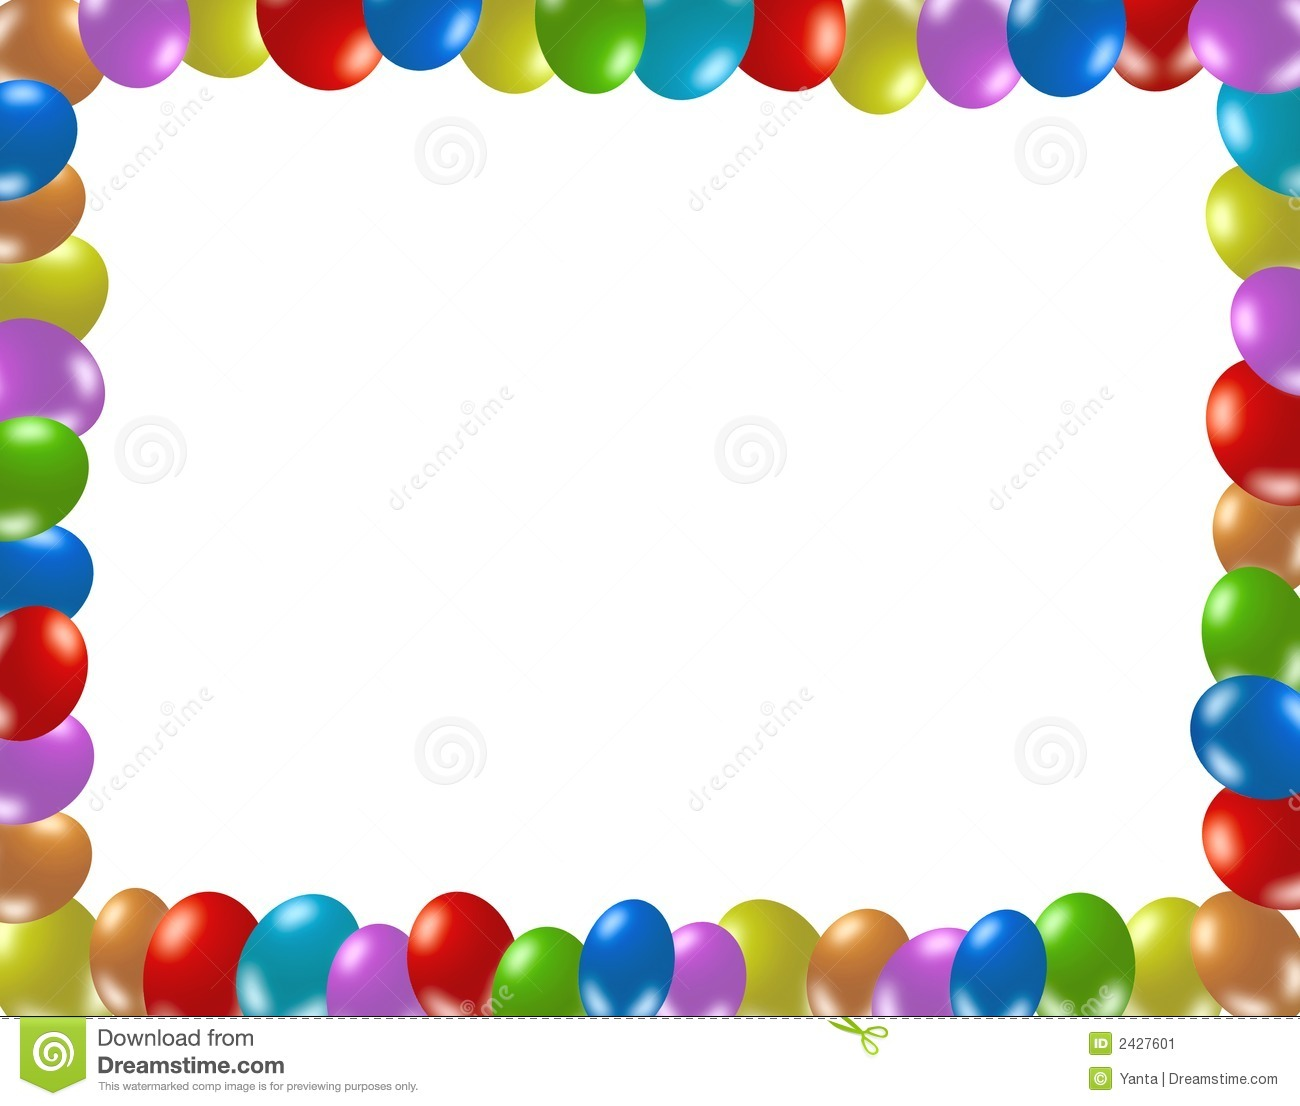 Frame of colorful balloons stock illustration. Illustration of ...